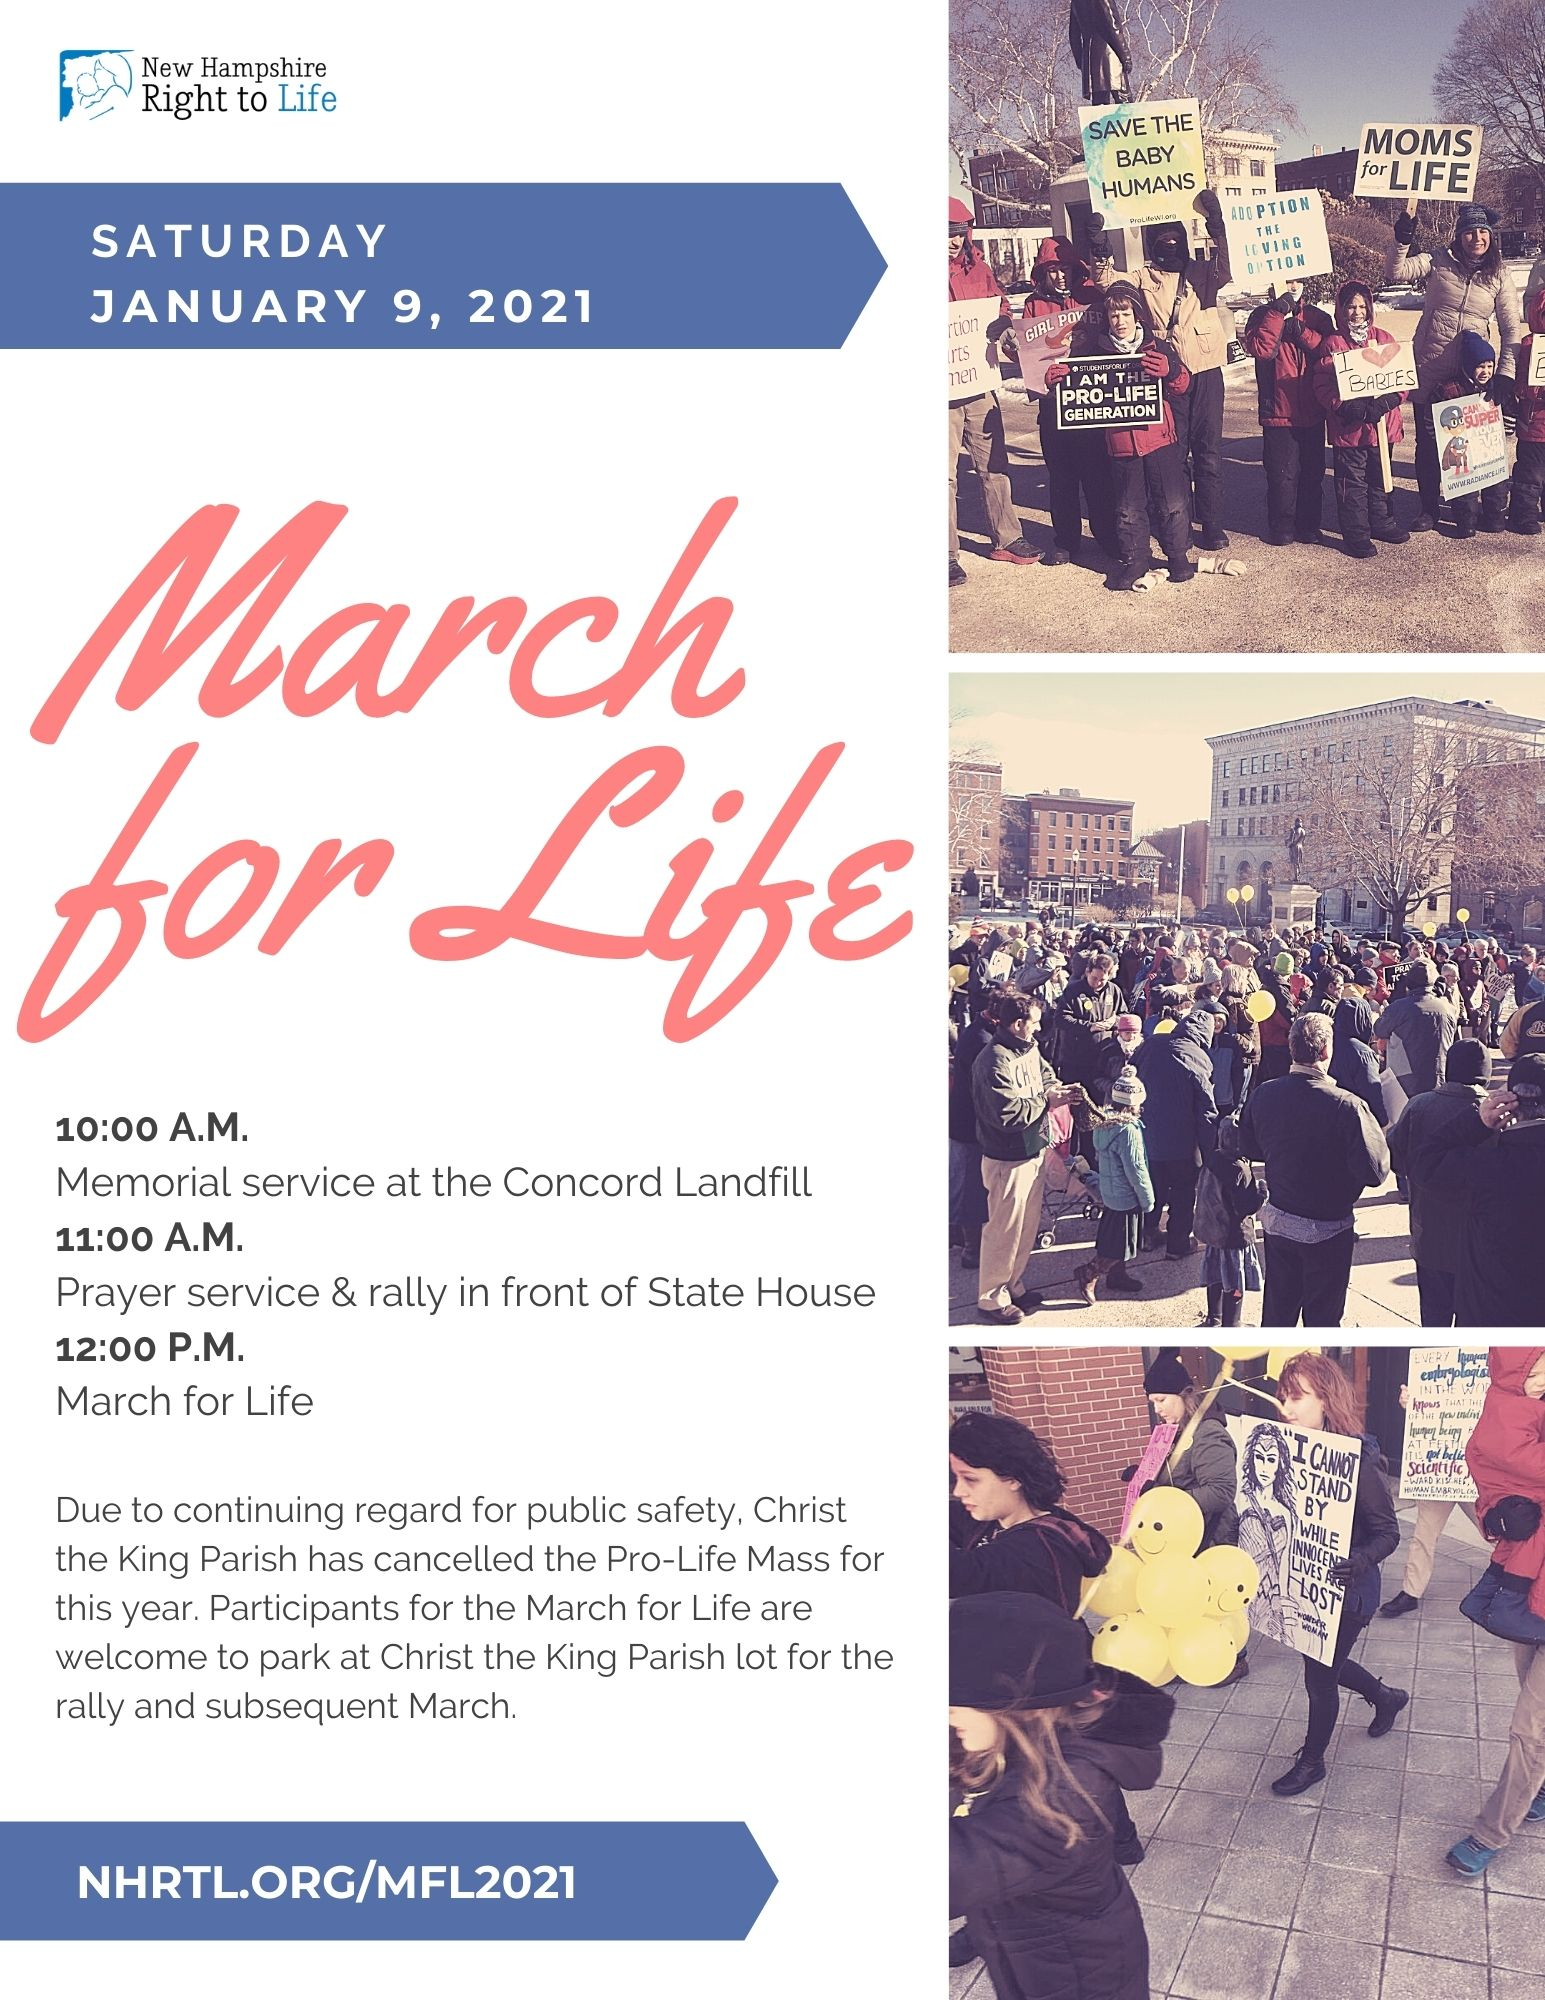 NH March for Life @ New Hampshire State House